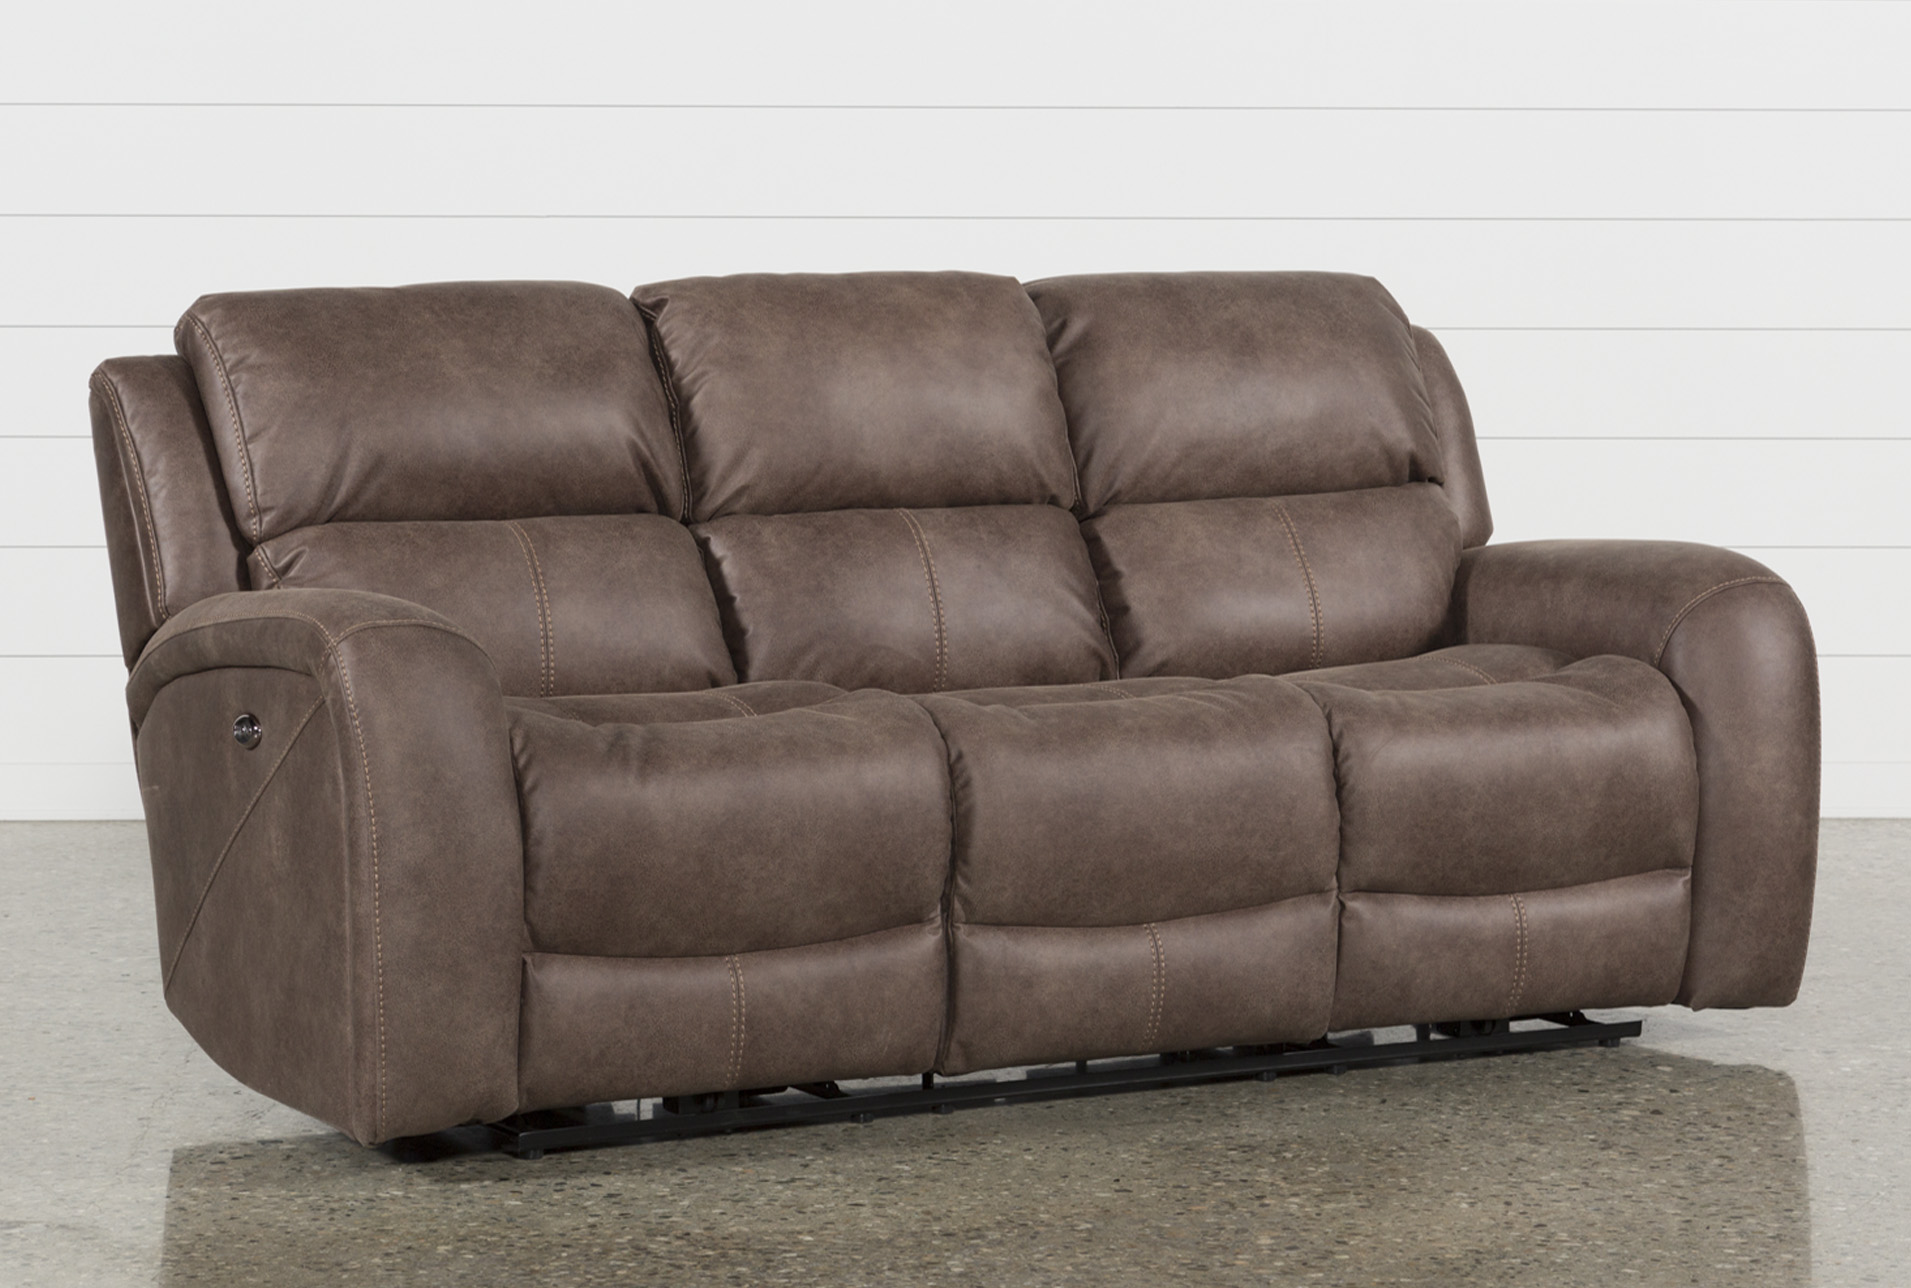 Deegan Bark Power Reclining Sofa (Qty: 1) Has Been Successfully Added To  Your Cart.